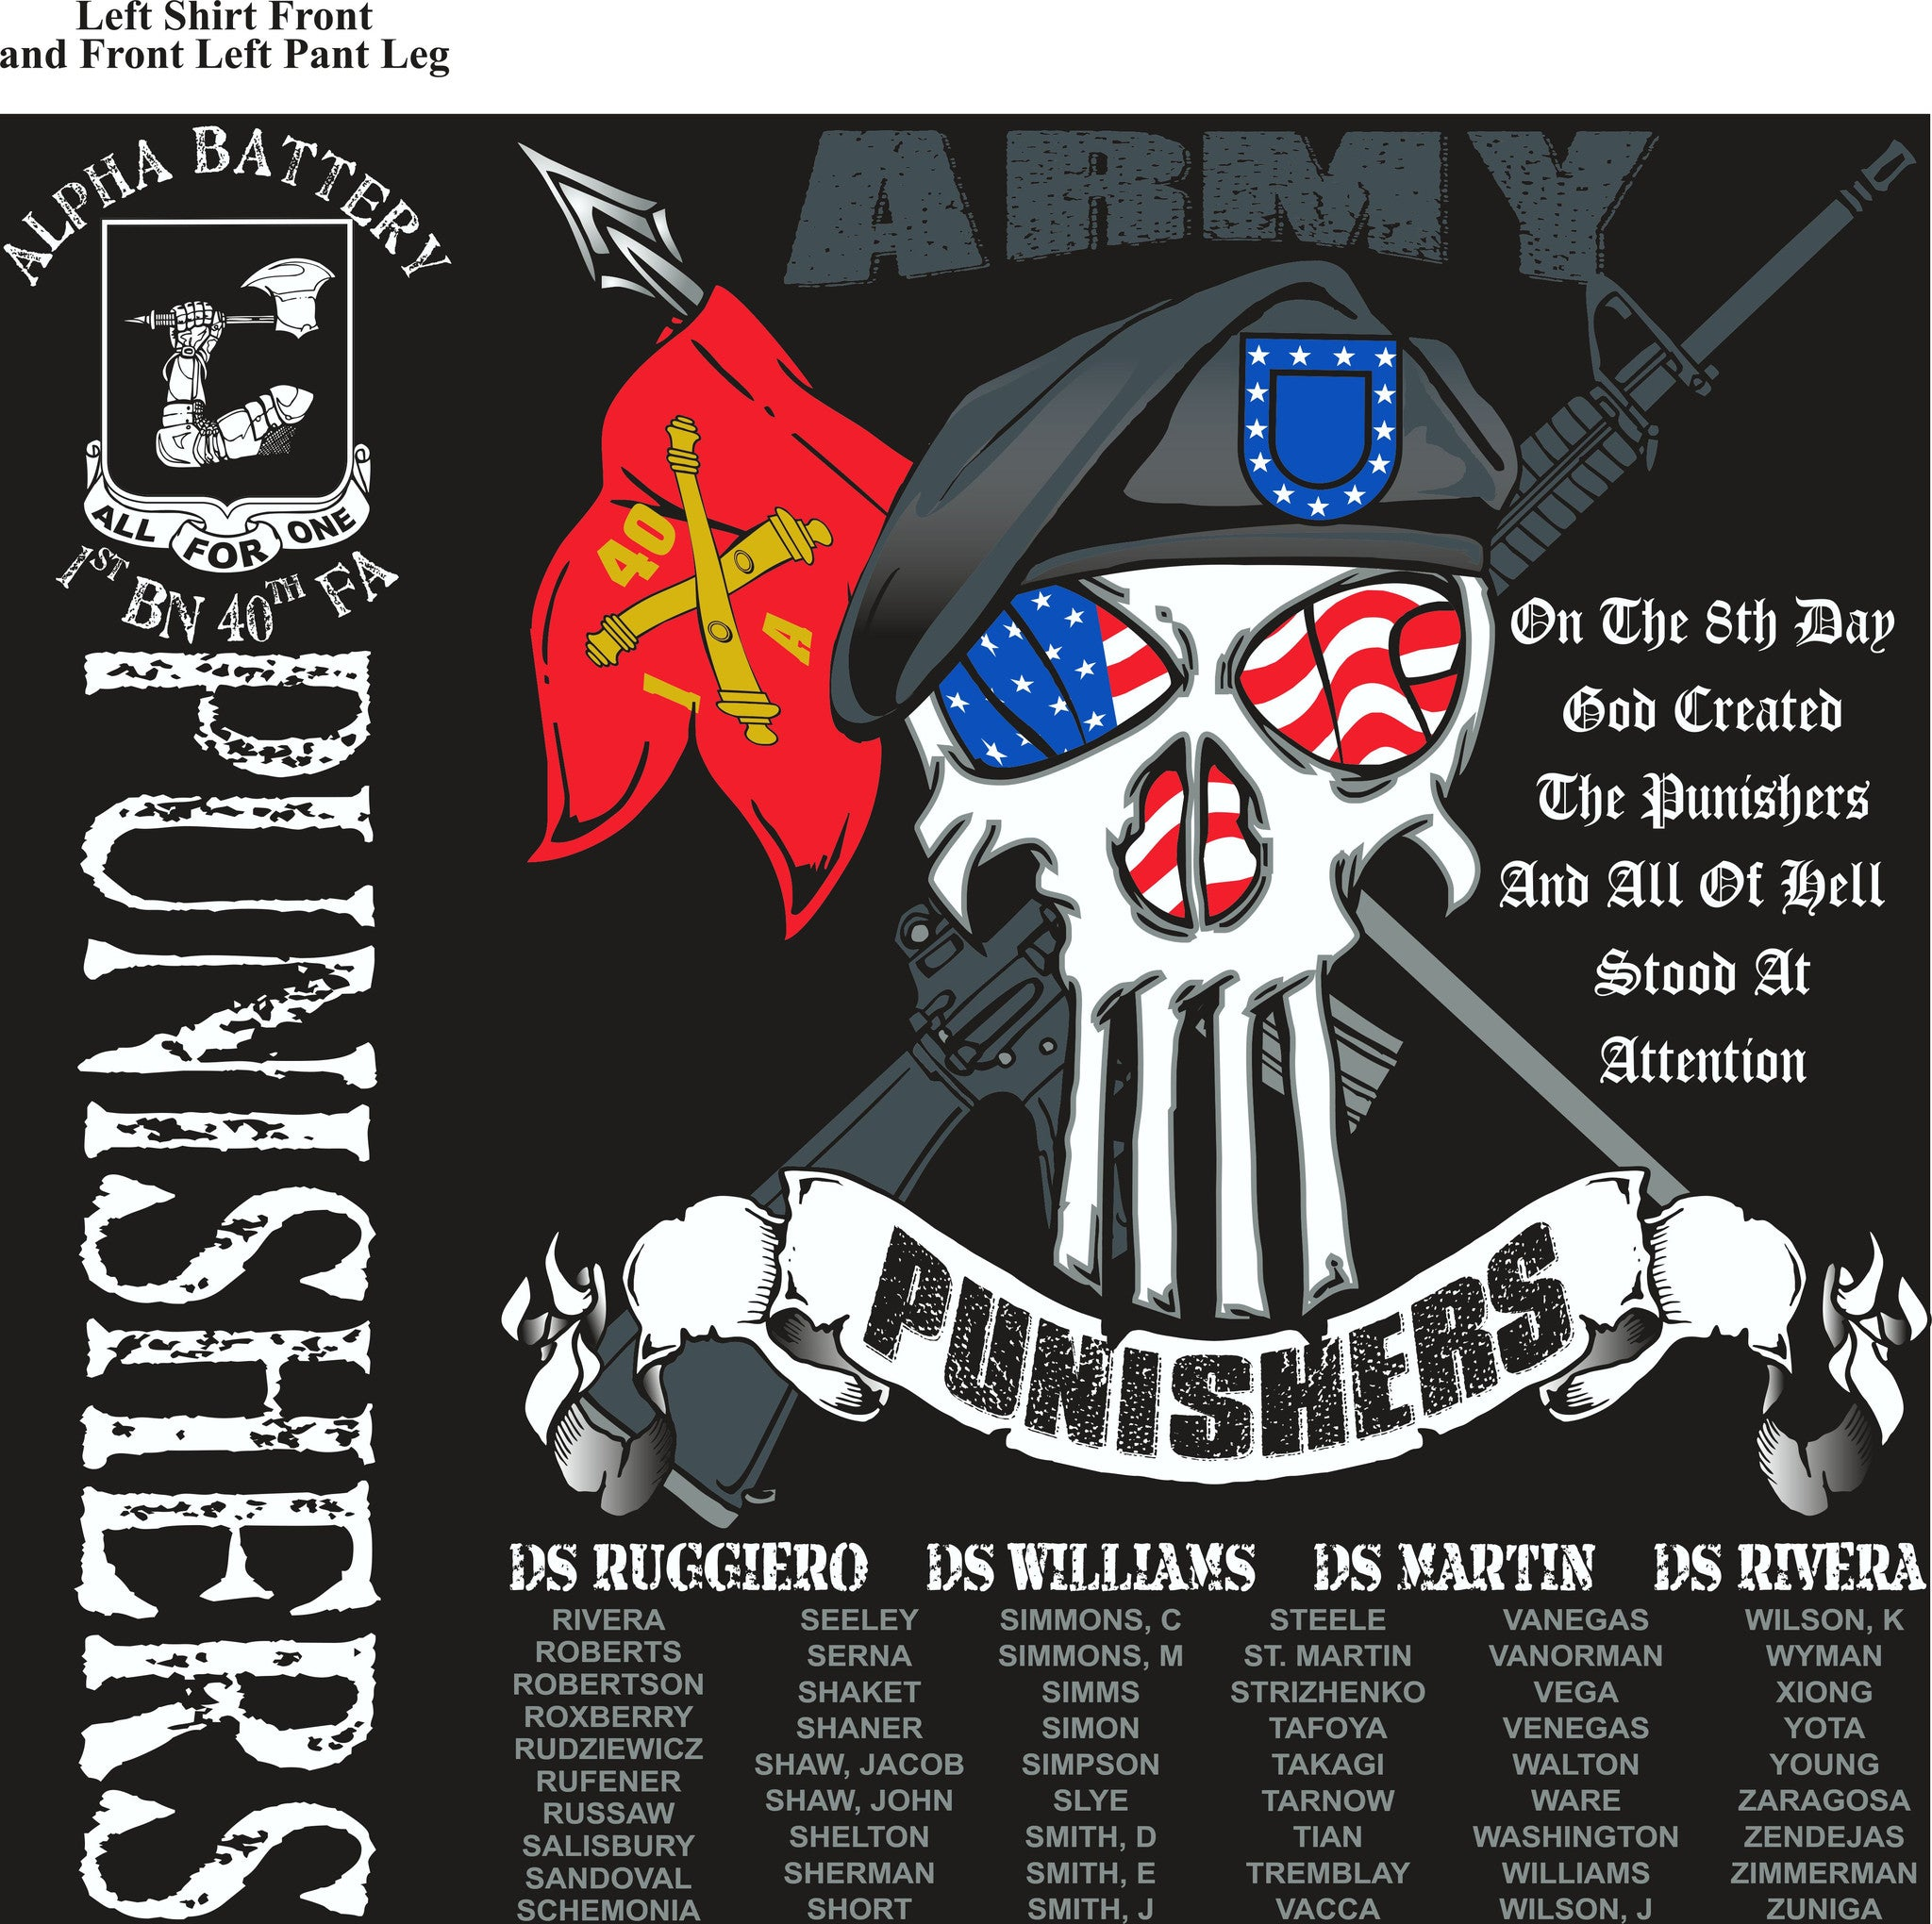 PLATOON SHIRTS (2nd generation print) ALPHA 1st 40th PUNISHERS DEC 2016